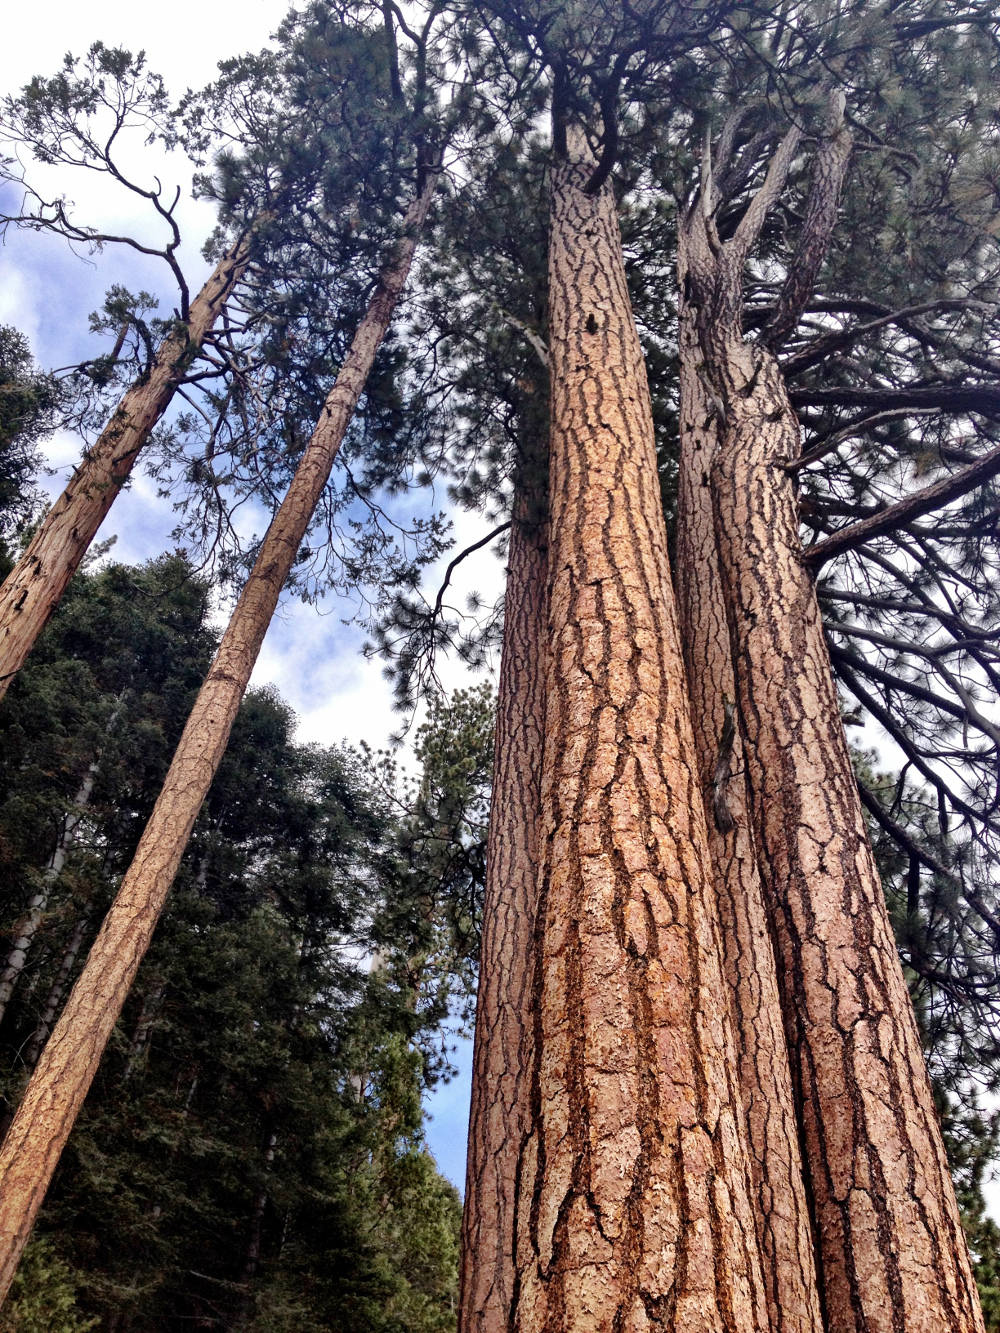 Exploring the Redwoods Forest Double-Barrelled Travel